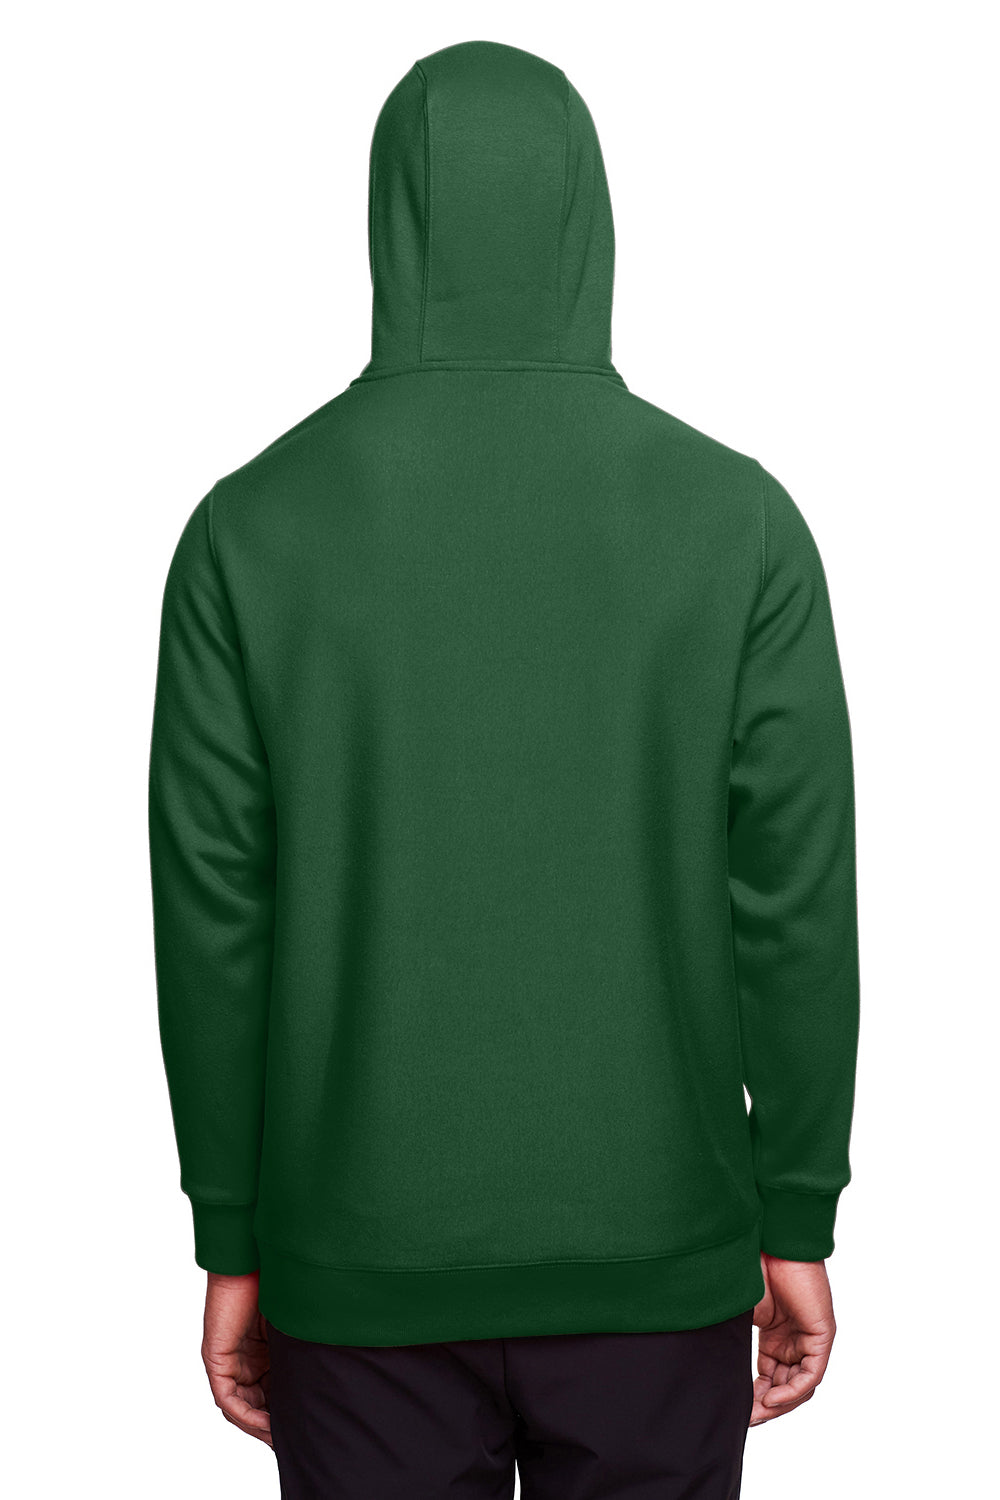 Team 365 TT96 Mens Zone HydroSport Fleece Water Resistant Hooded Sweatshirt Hoodie Dark Green Back